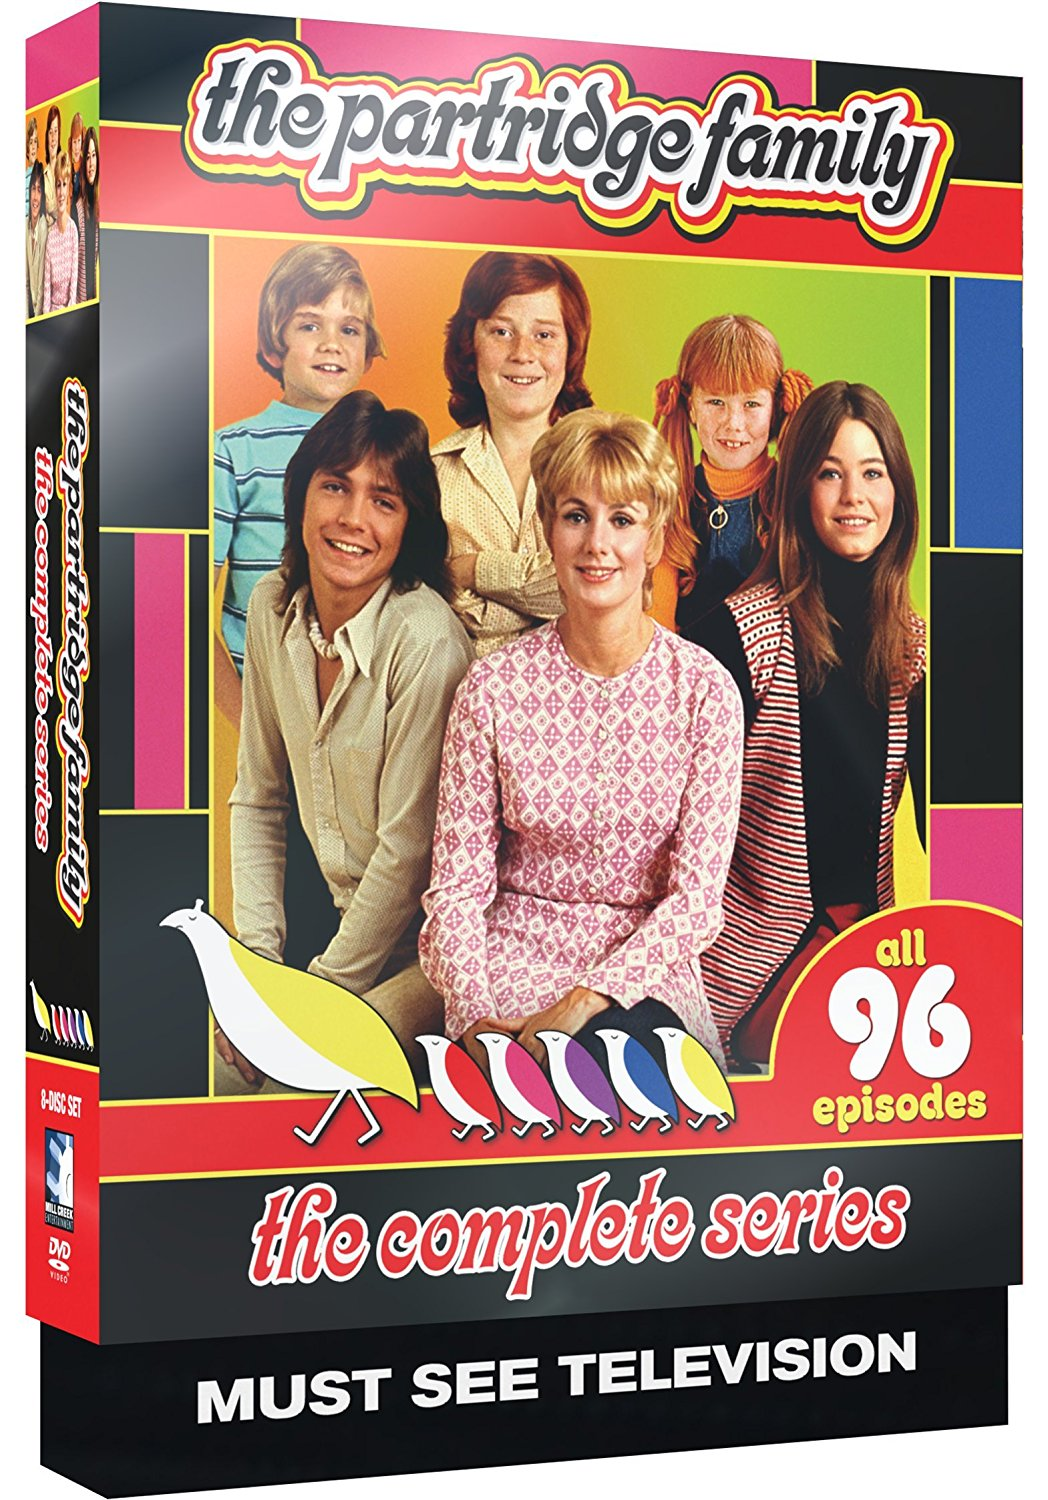 'The Partridge Family' complete series $17.99